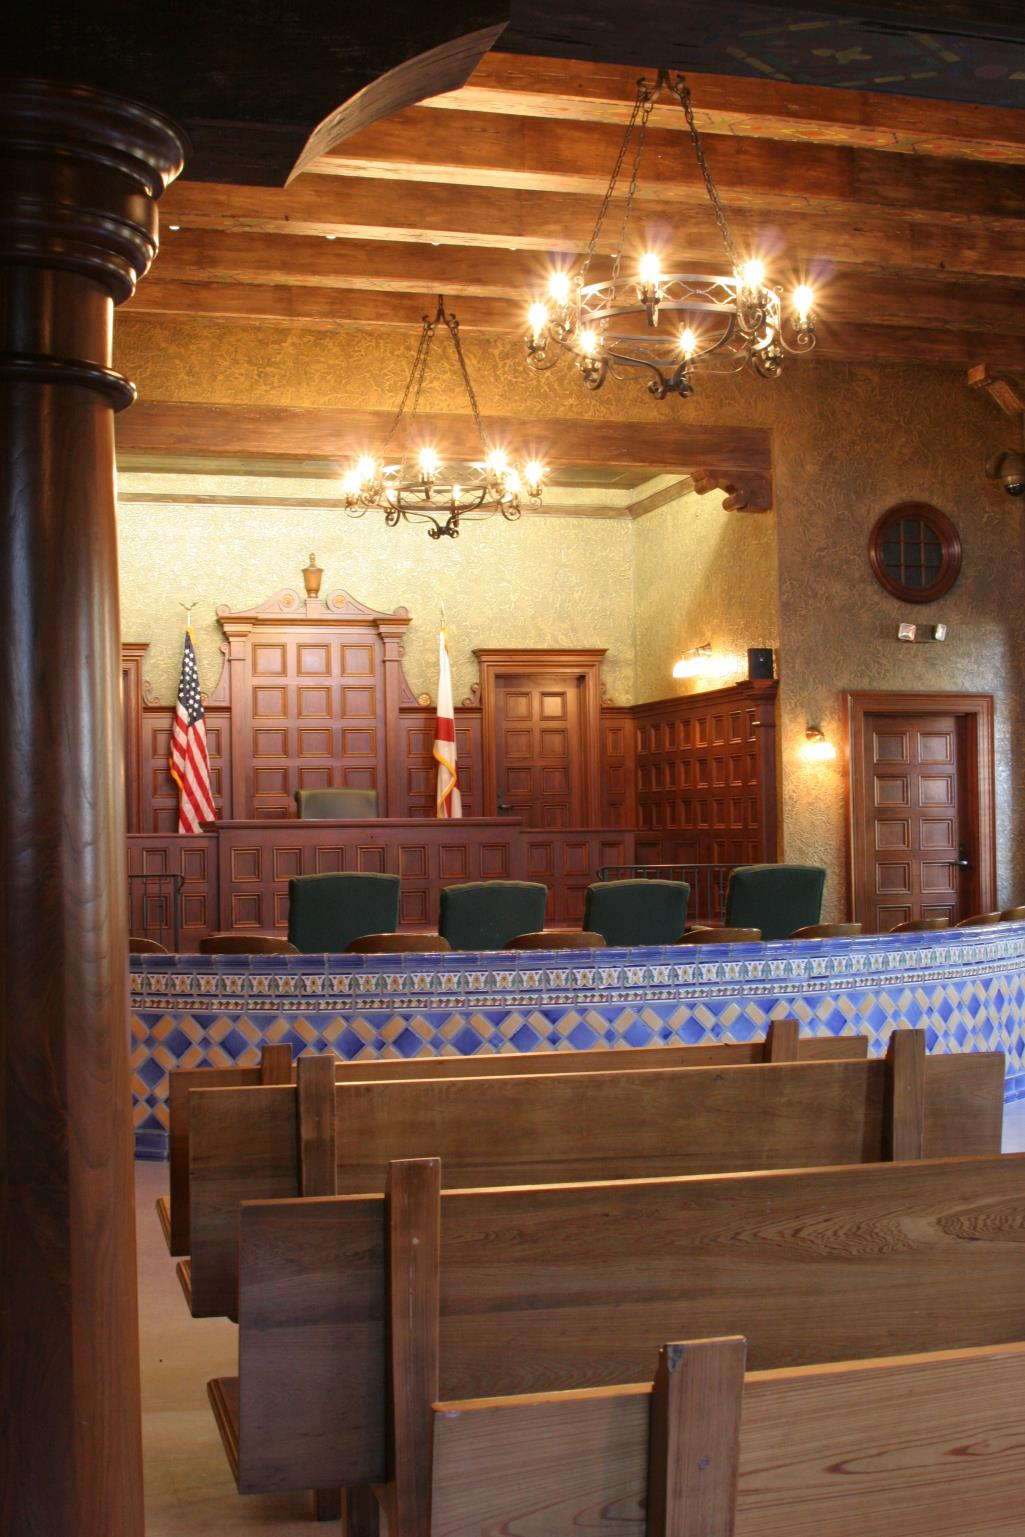 View of seating in Sarasota Historic Courtroom.